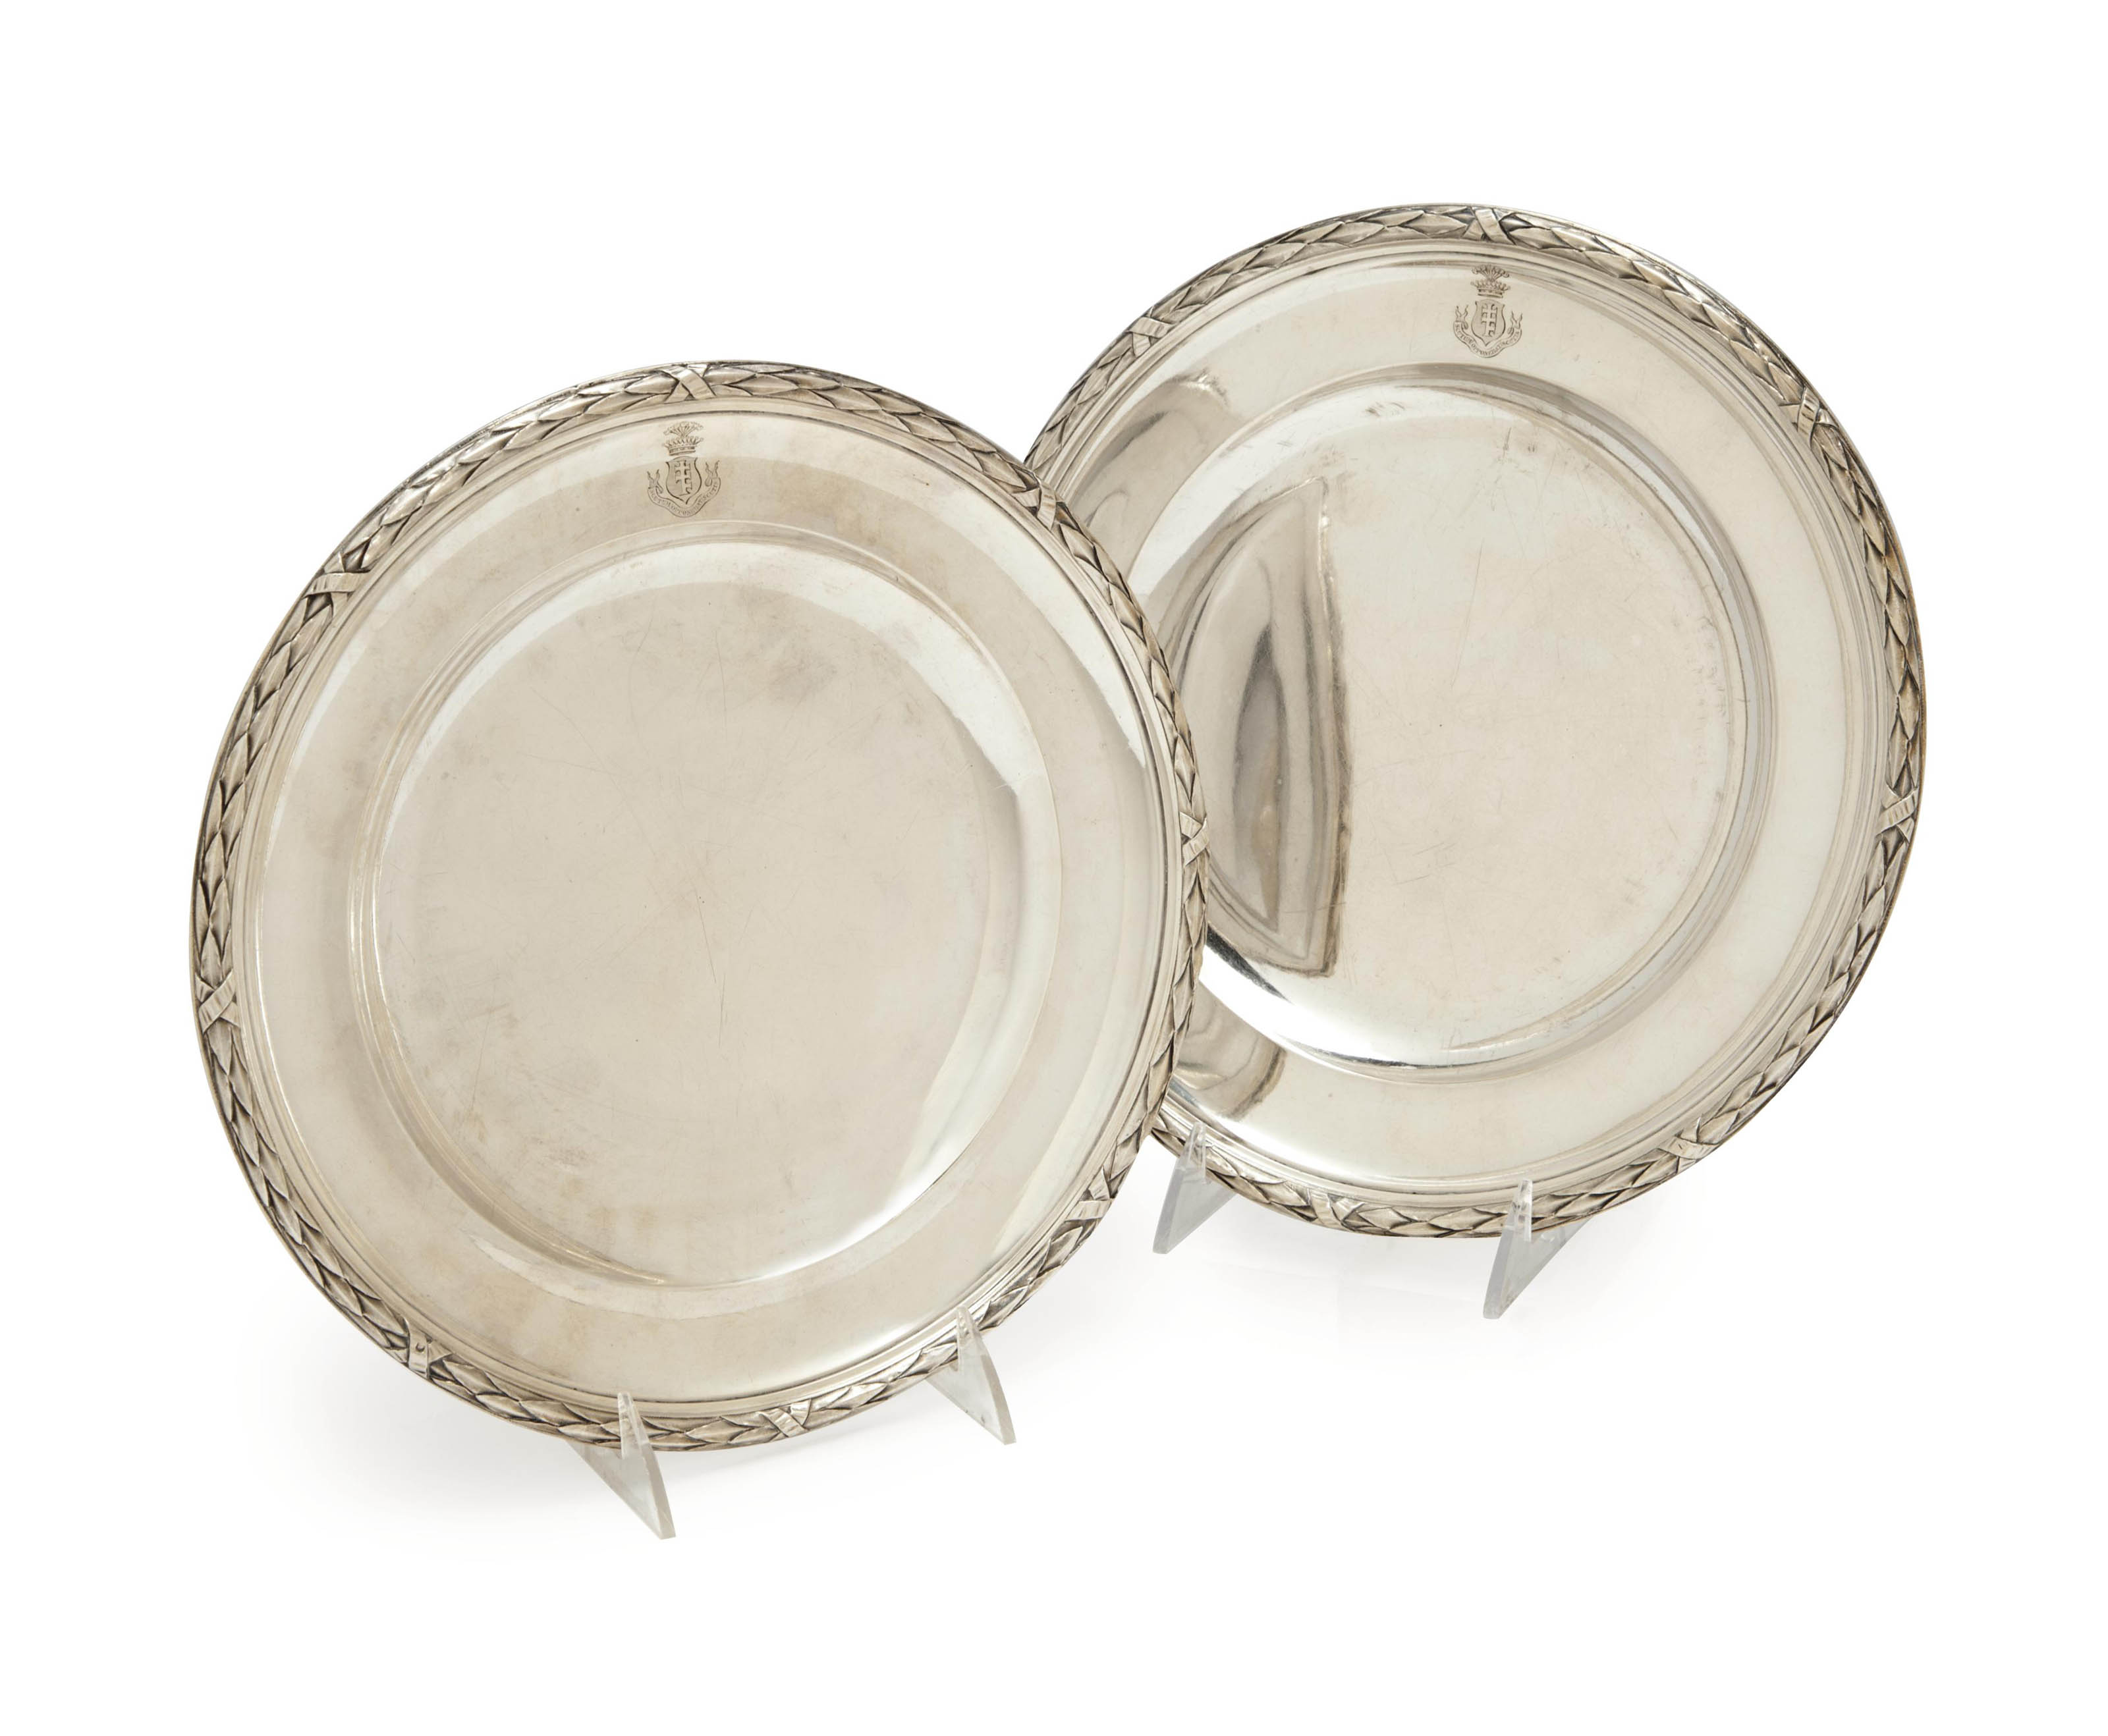 A PAIR OF FRENCH SILVER PLATES